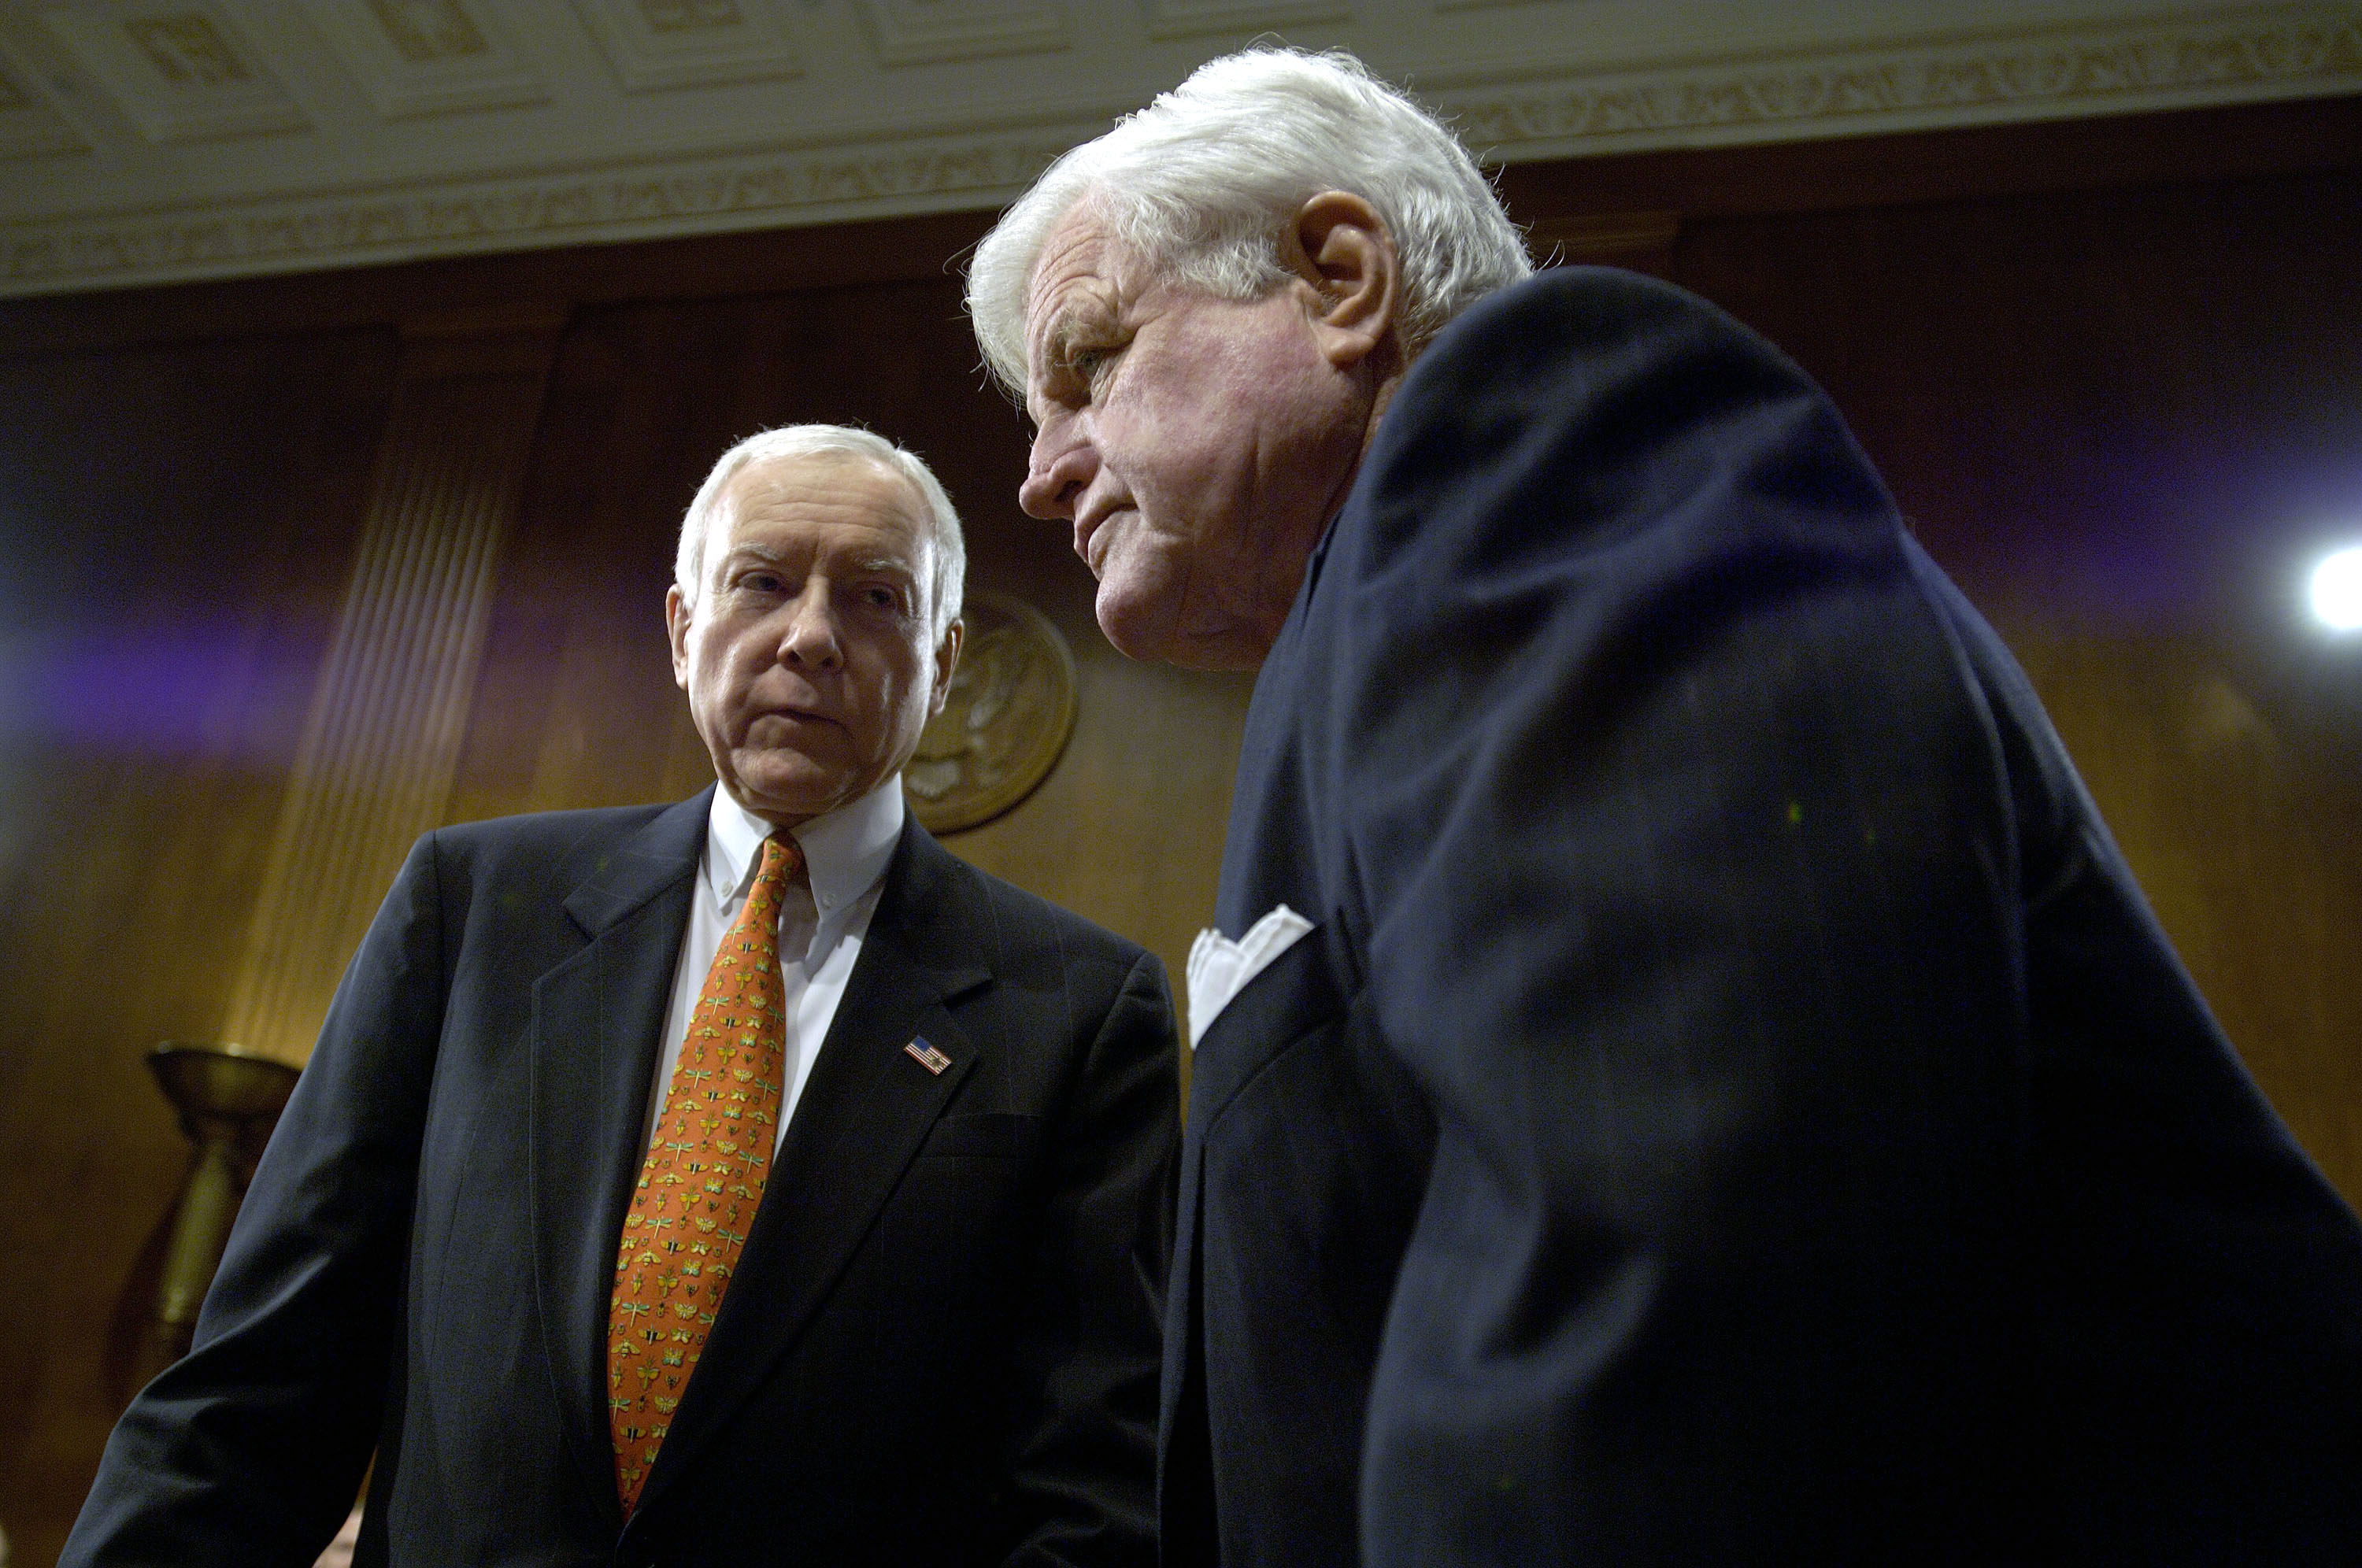 Senator Orrin G. Hatch (R-UT), left, and Senator Edward Kennedy (D-MA), confer prior to the Senate Judiciary Committee Markup to vote on the nomination of Judge Samuel Alito to the U.S. Supreme Court on Jan. 24, 2006 in Washington, D.C.